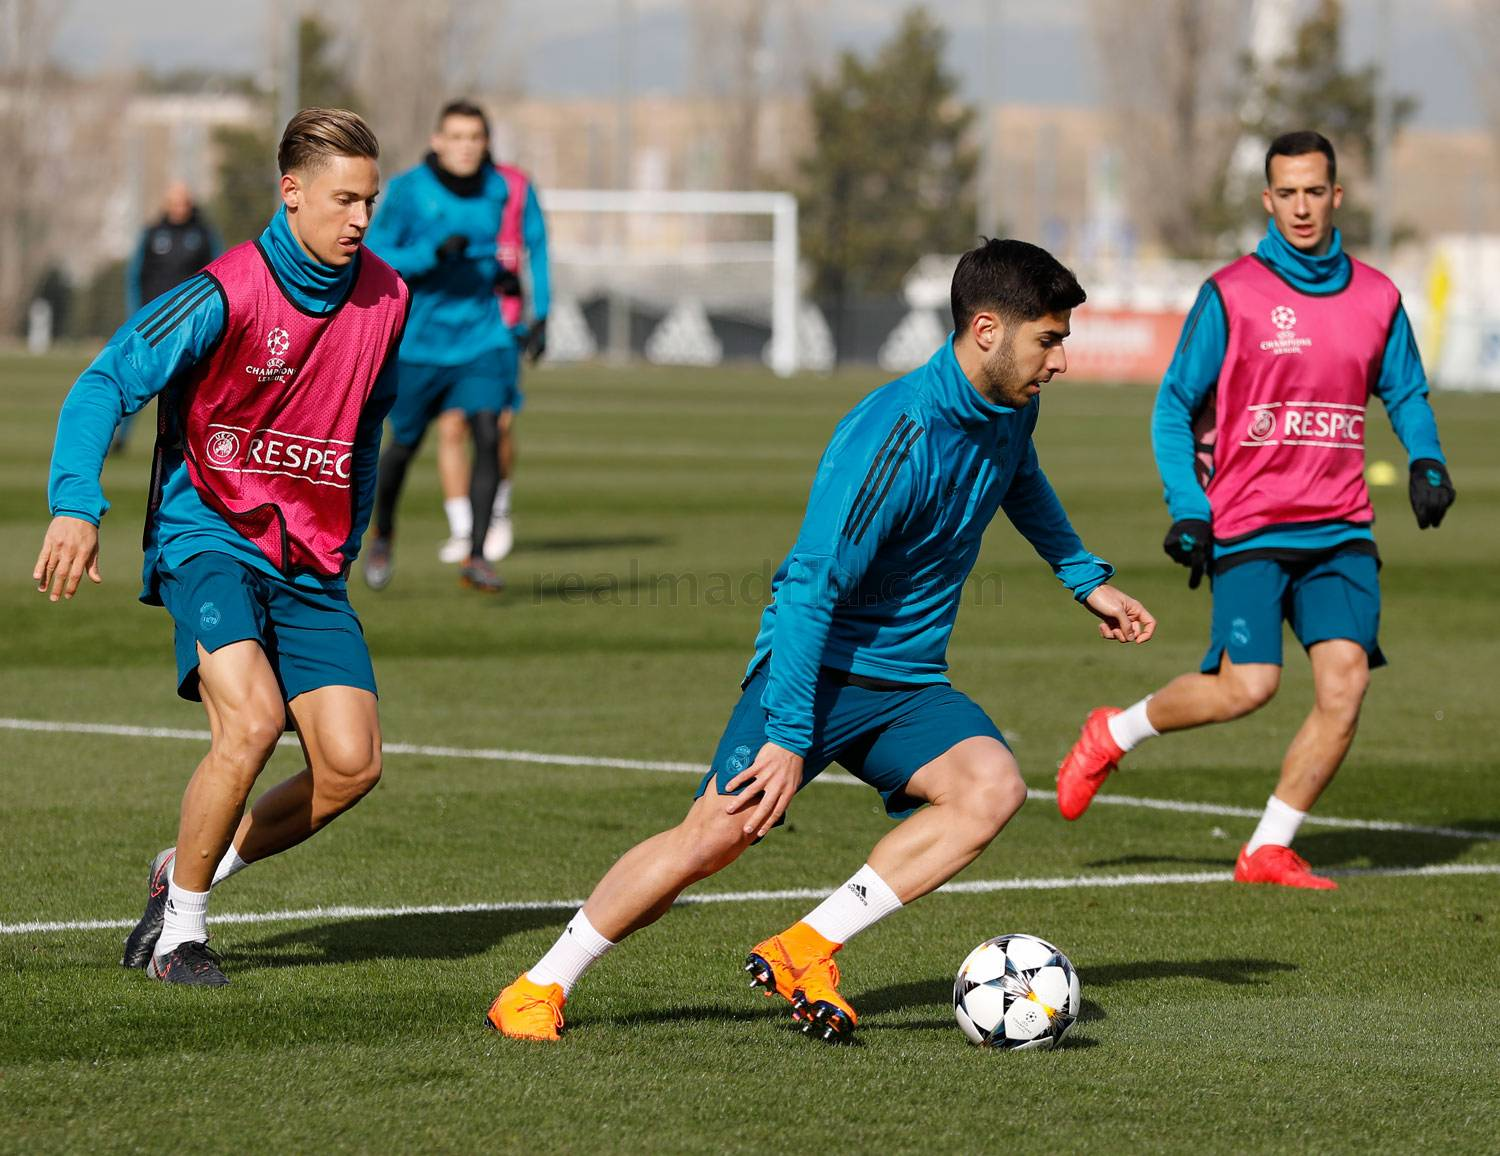 Real Madrid - Entrenamiento del Real Madrid - 13-02-2018